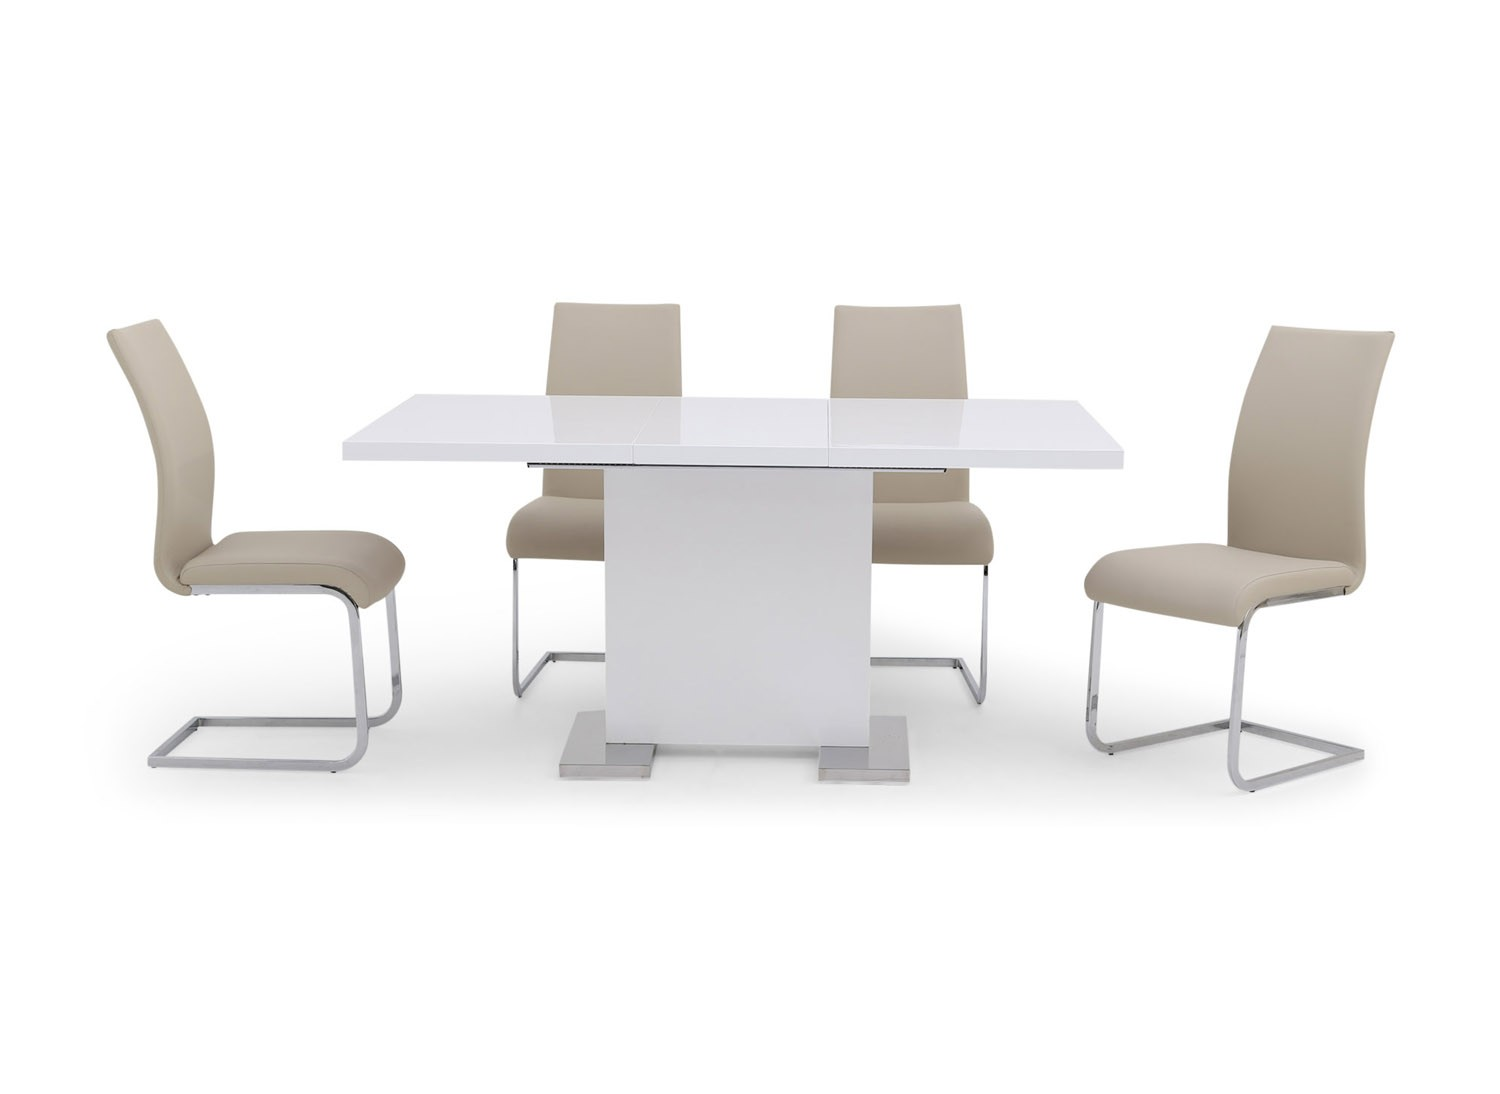 https://www.firstfurniture.co.uk/pub/media/catalog/product/f/a/fairmont_leone_ext_white_high_gloss_dining_table_4_paolo_black_chairs_2.jpg